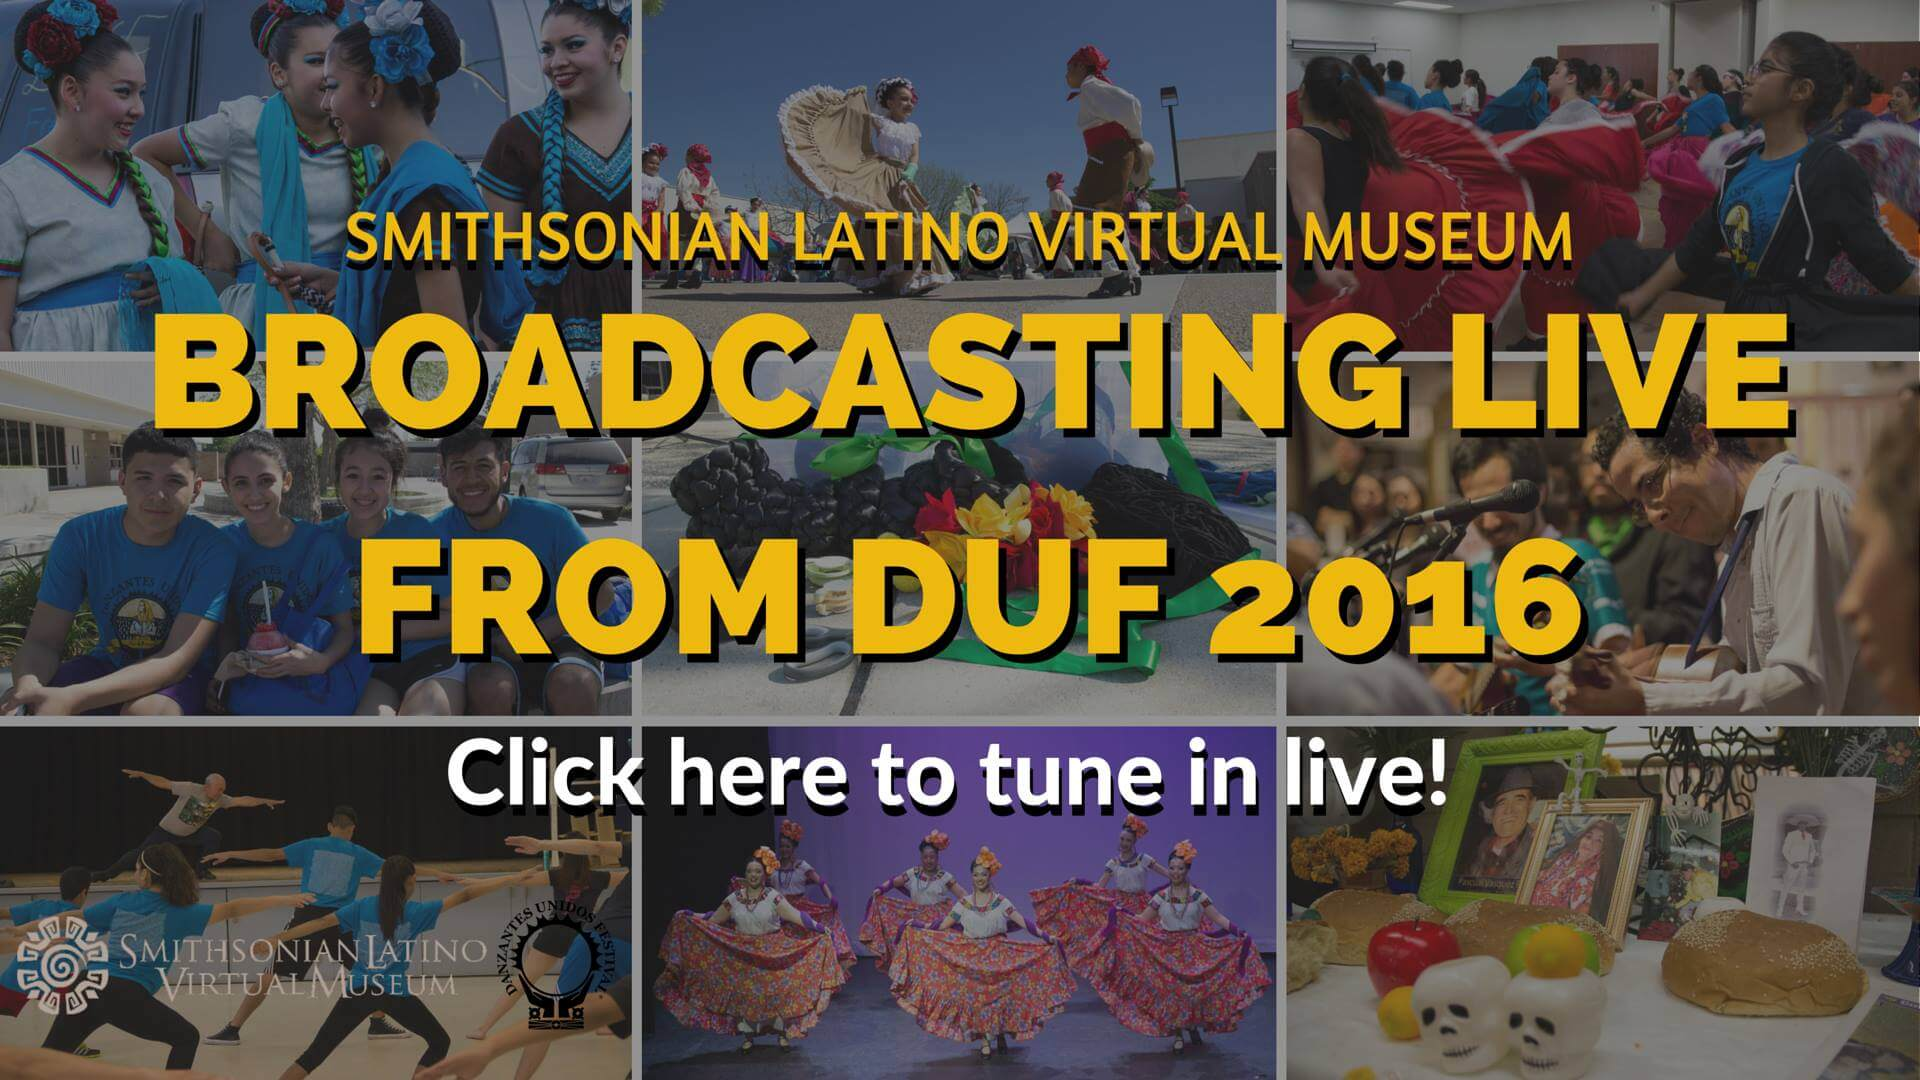 Smithsonian Latino Virtual Museum DUF 2016